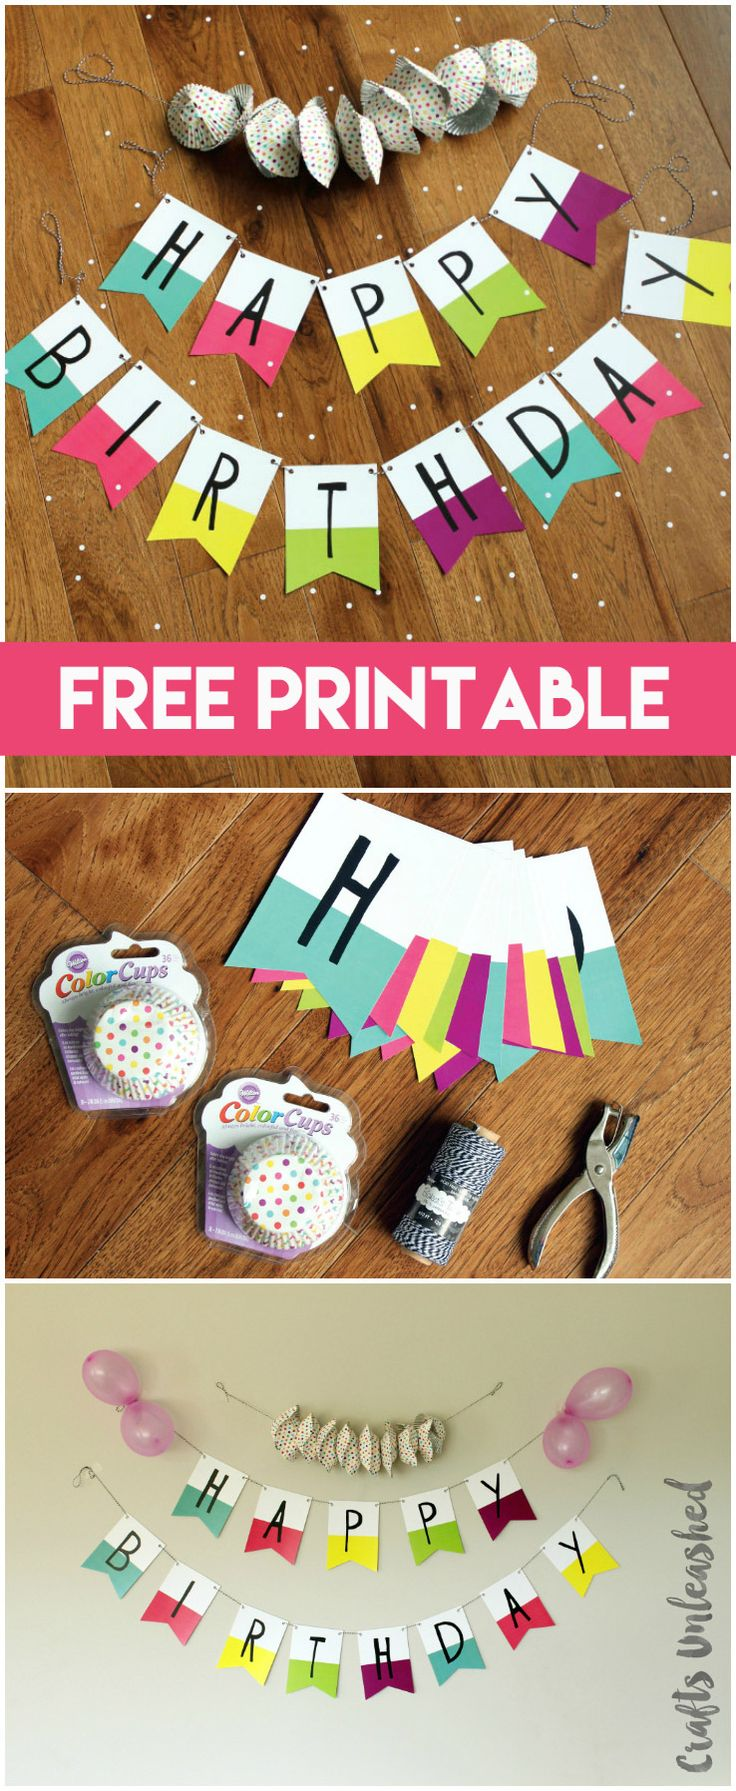 Free Printable Banner: Happy Birthday Pennants - Consumer Crafts                                                                                                                                                                                 More